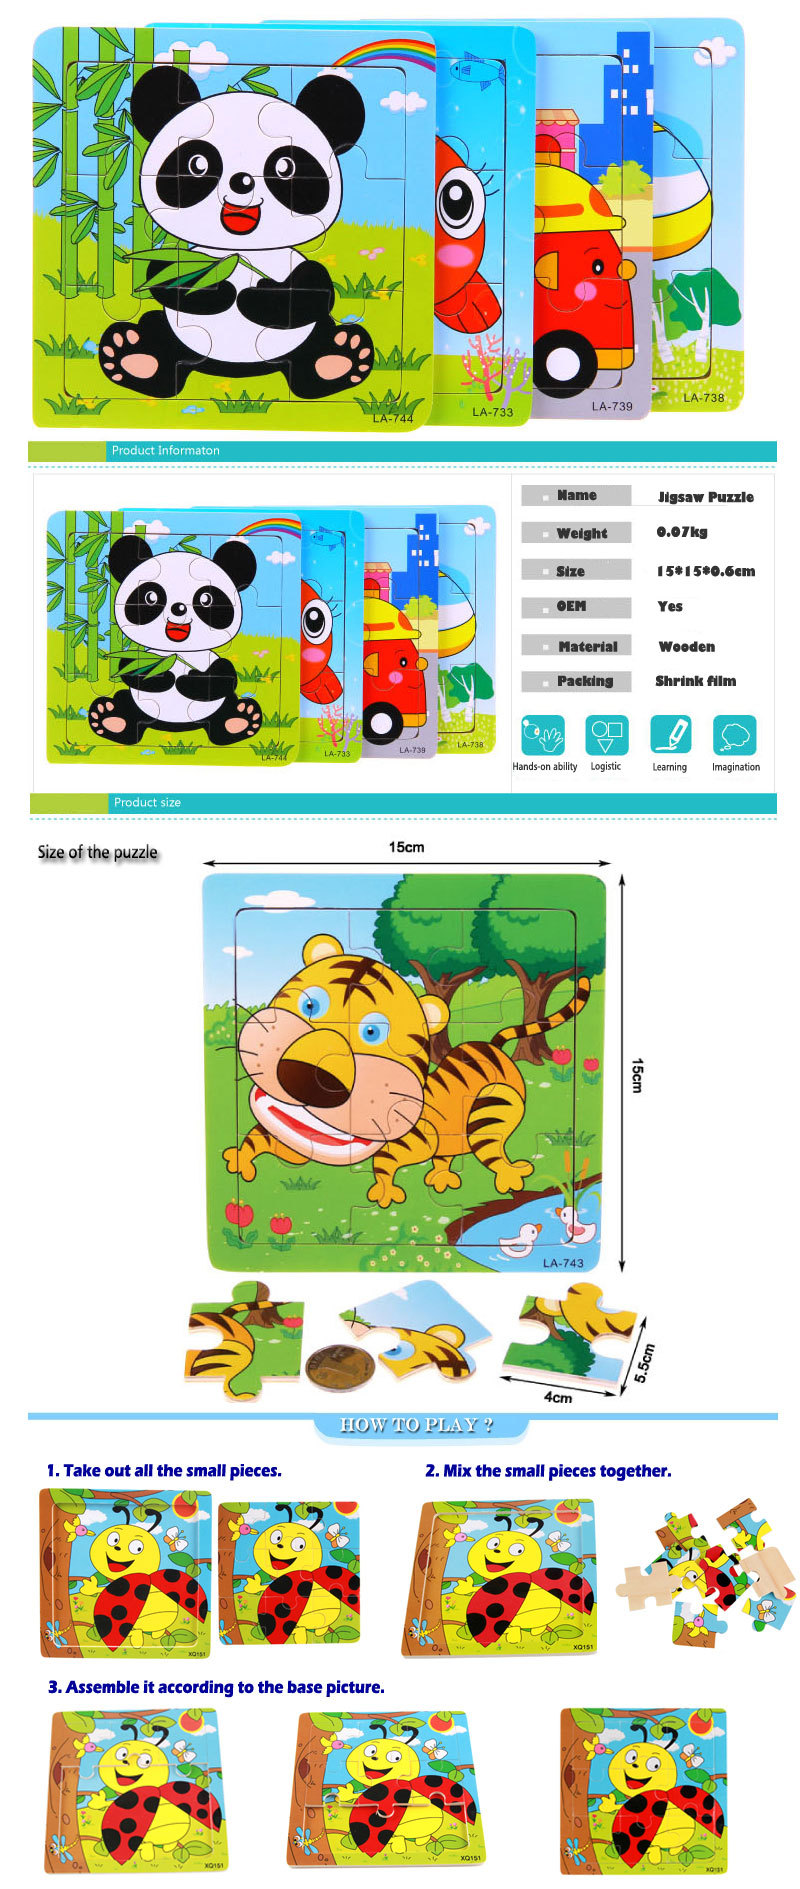 Wooden Mind Games for Kids Wooden Jigsaw Puzzles with Magnets